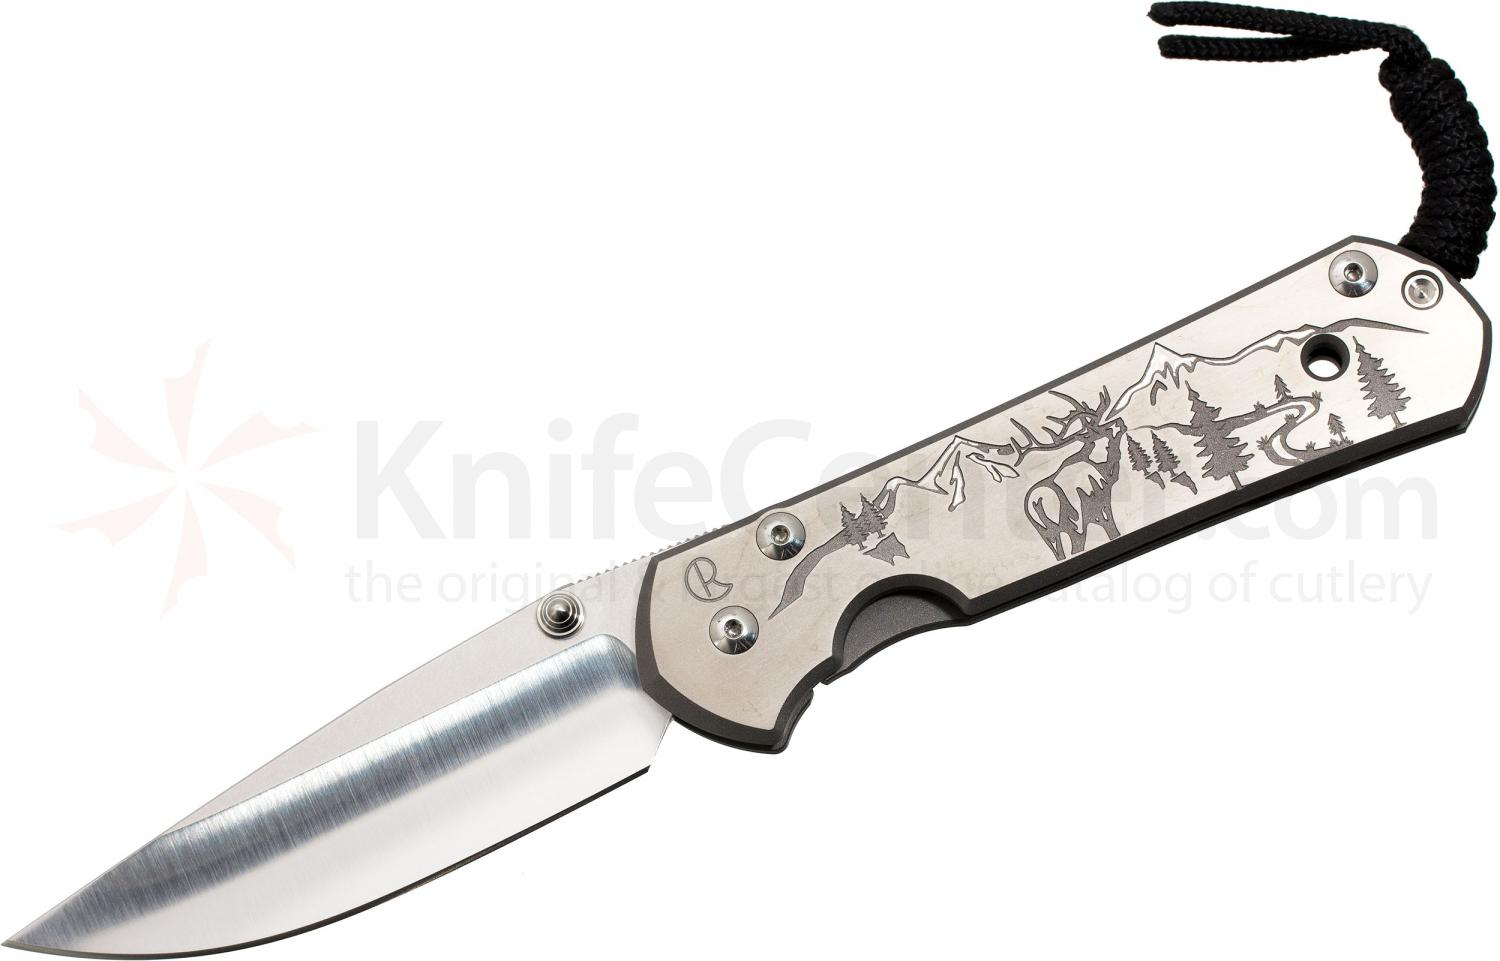 Chris Reeve Large Sebenza 21 Elk Mountain CGG 3.625 inch S35VN Blade, Titanium Handles DISCONTINUED VERSION, LIMITED AVAILABILITY